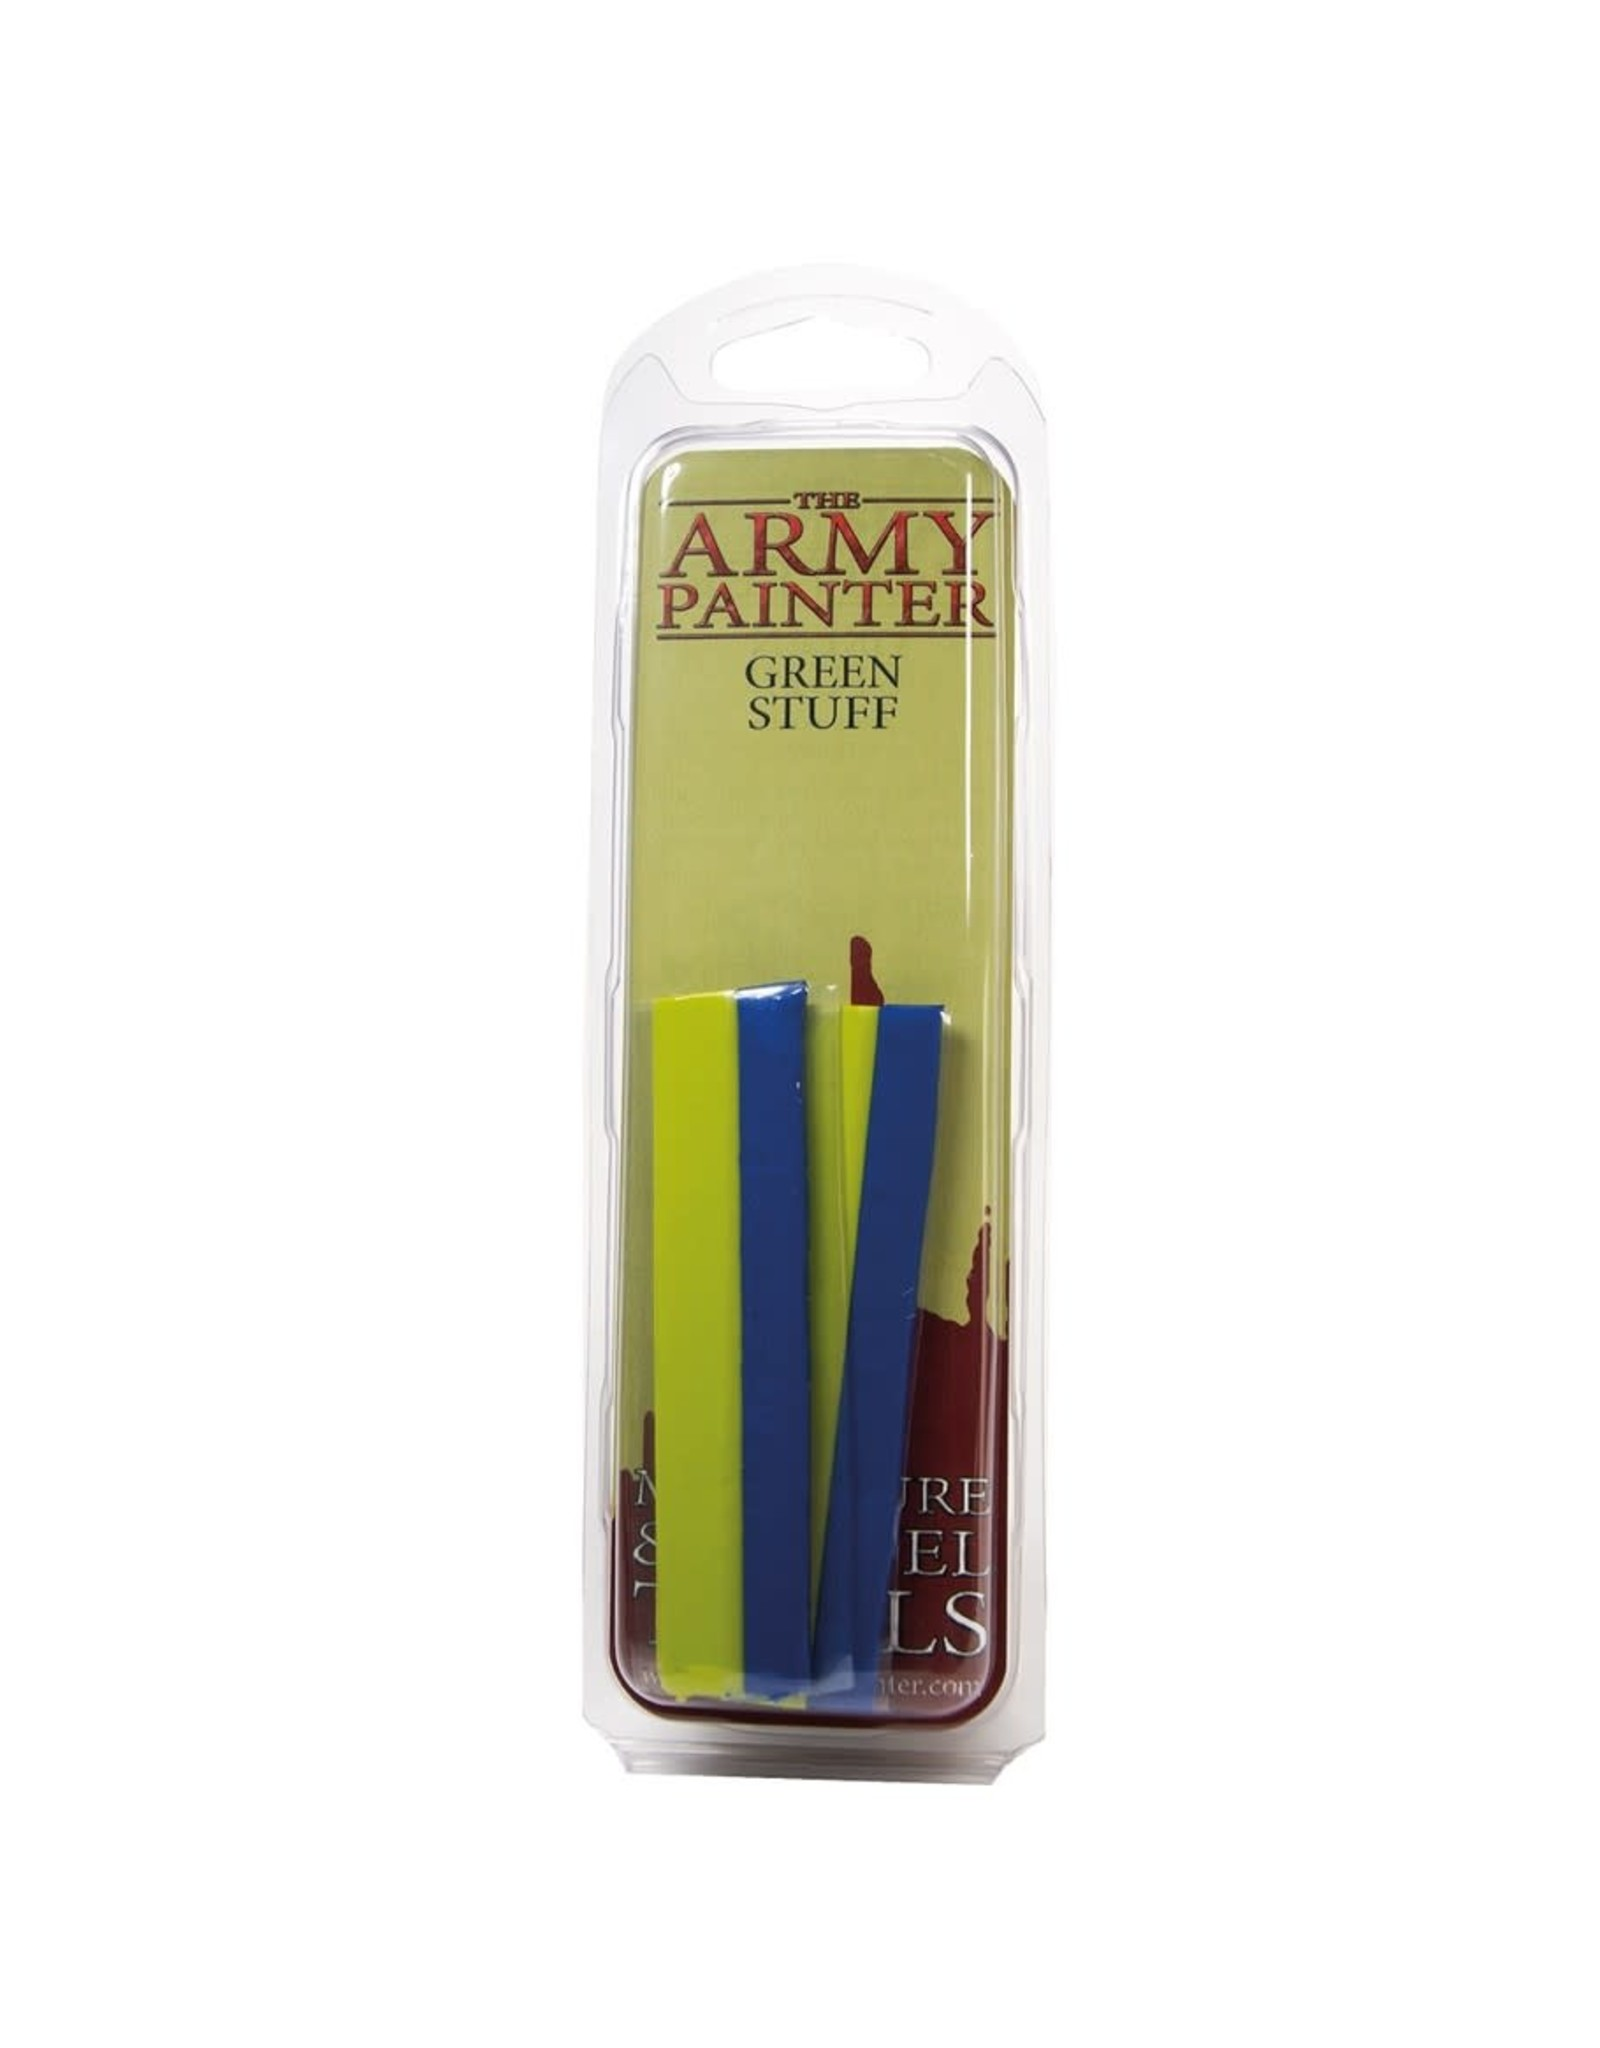 Army Painter Green Stuff (The Army Painter)